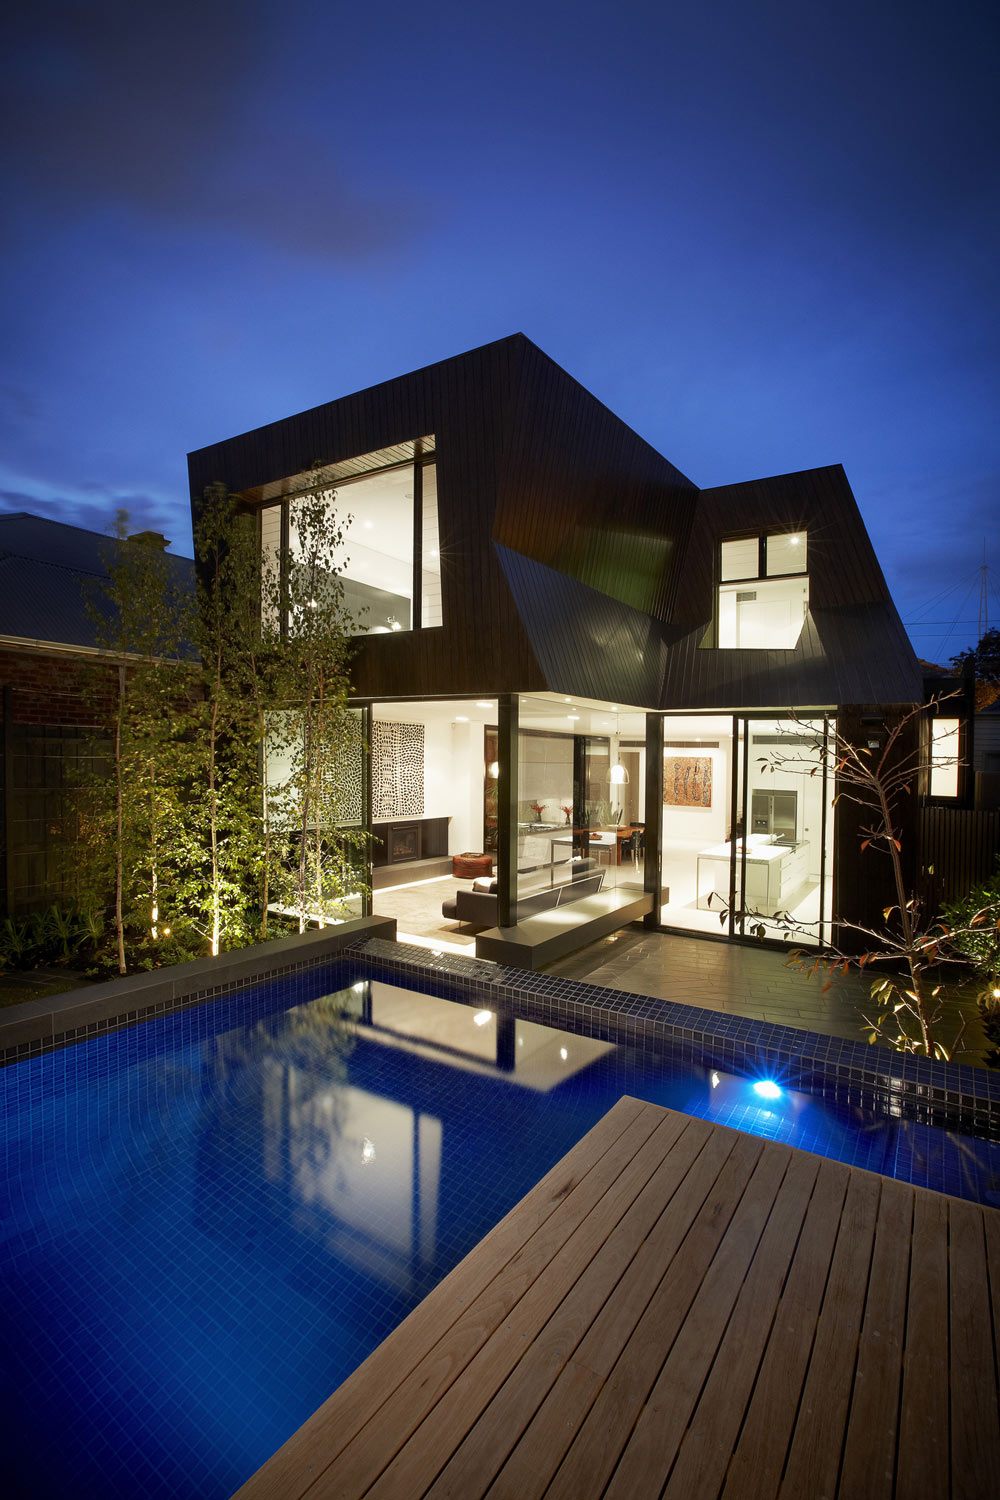 Evening Lights, Enclave House in Melbourne, Australia by BKK Architects